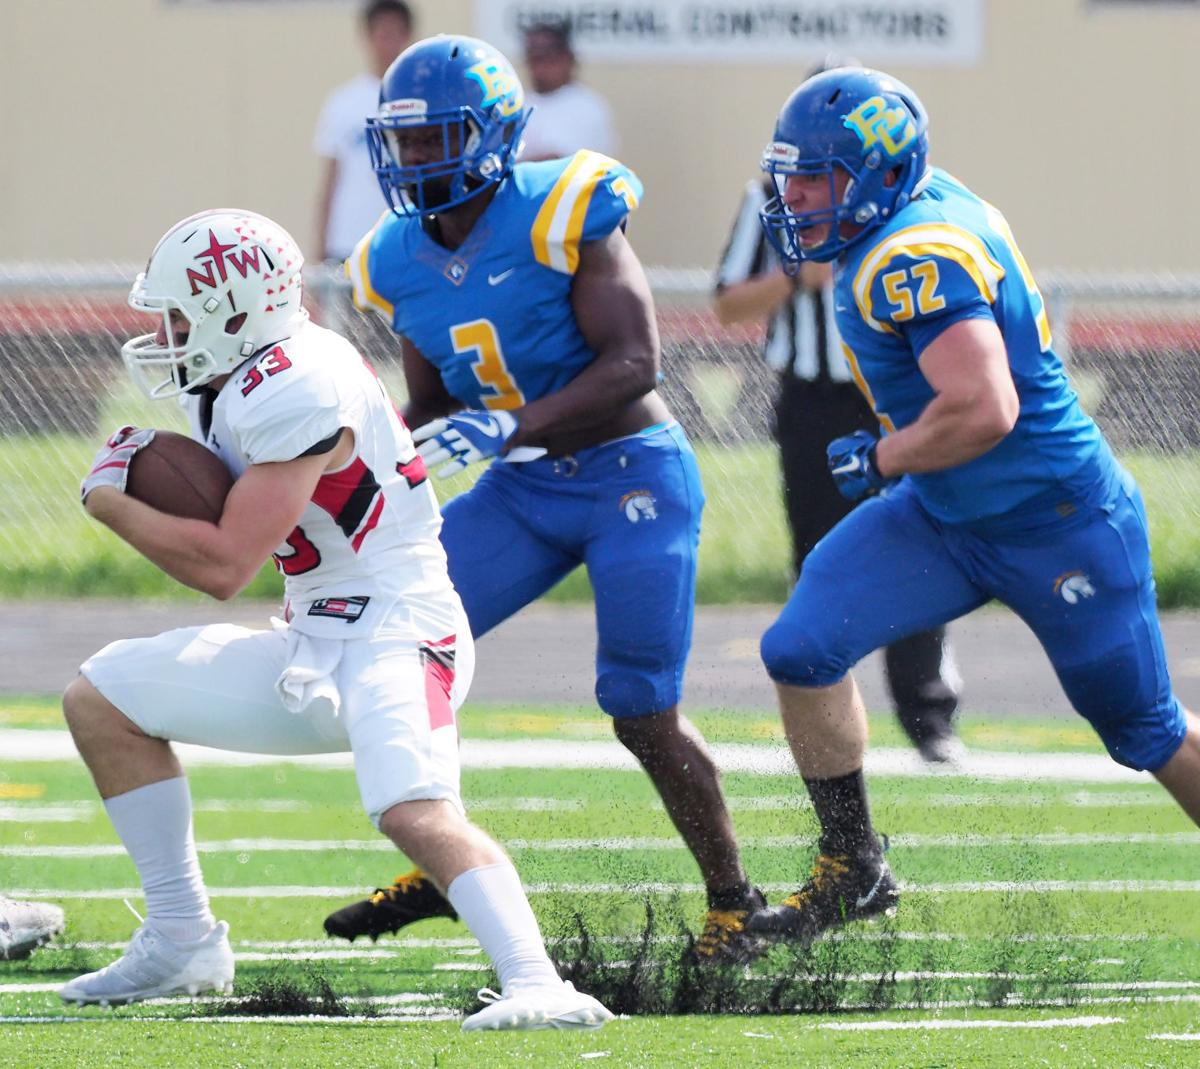 Northwestern at Briar Cliff football